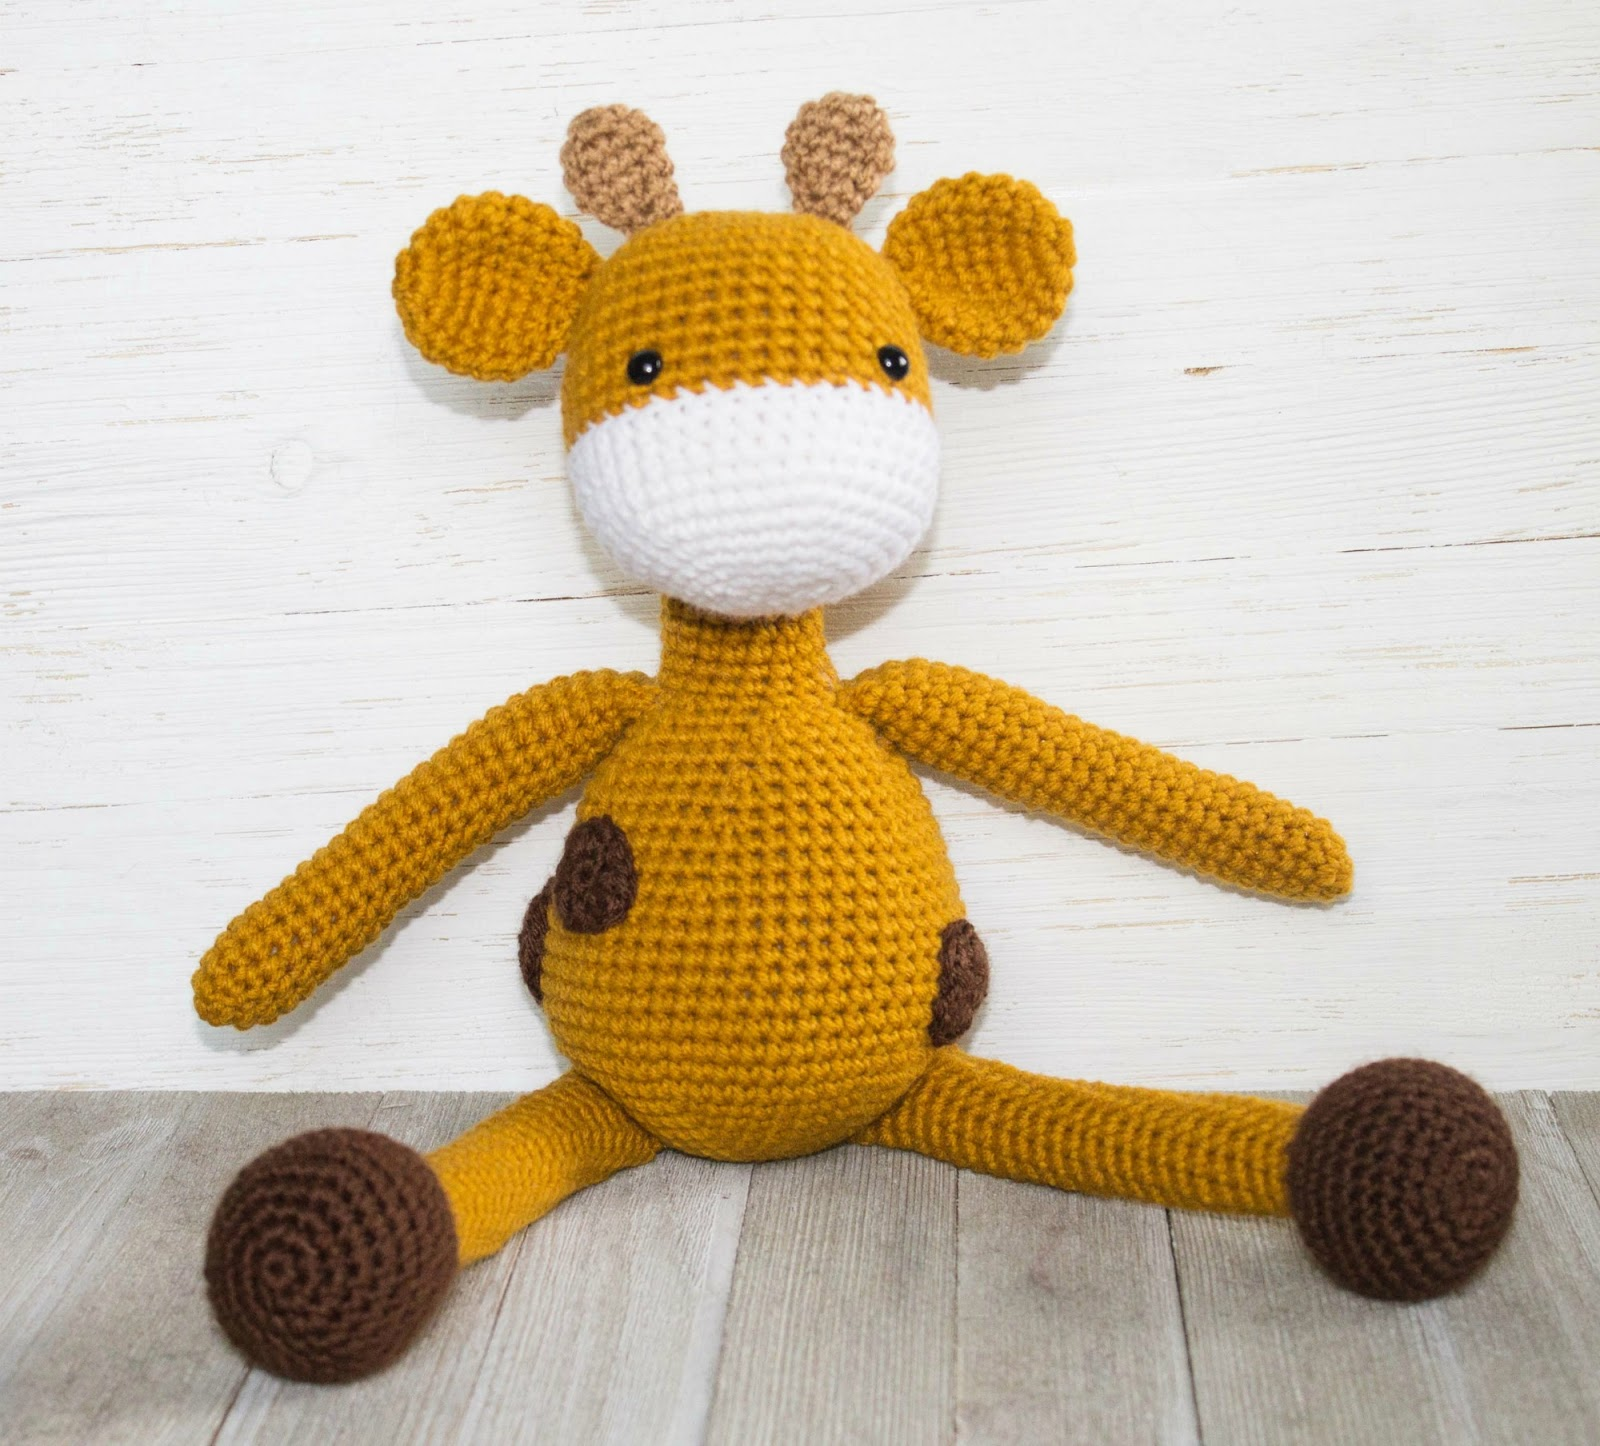 45 Diy Crochet Animal Craft Ideas Free Amigurumi Patterns